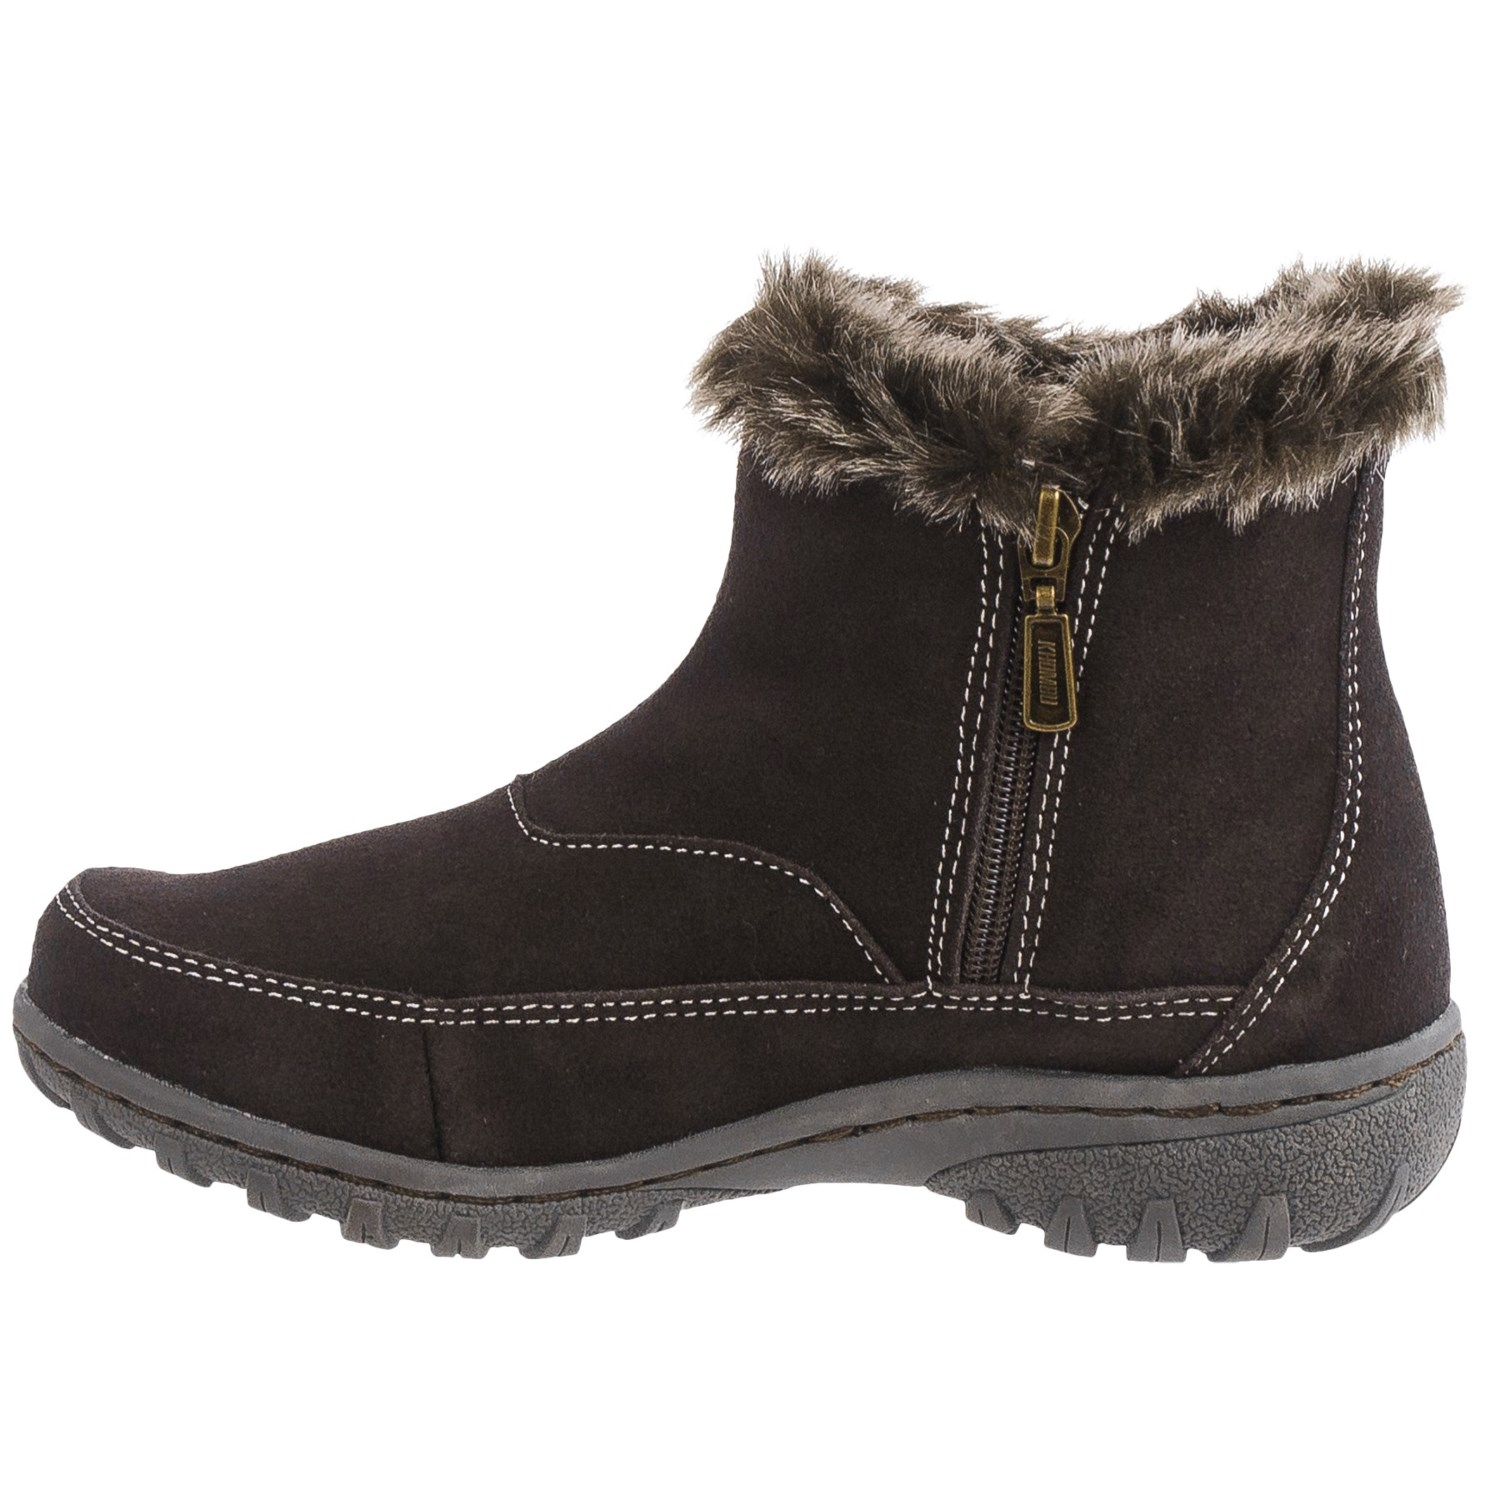 Keen Boots Clearance